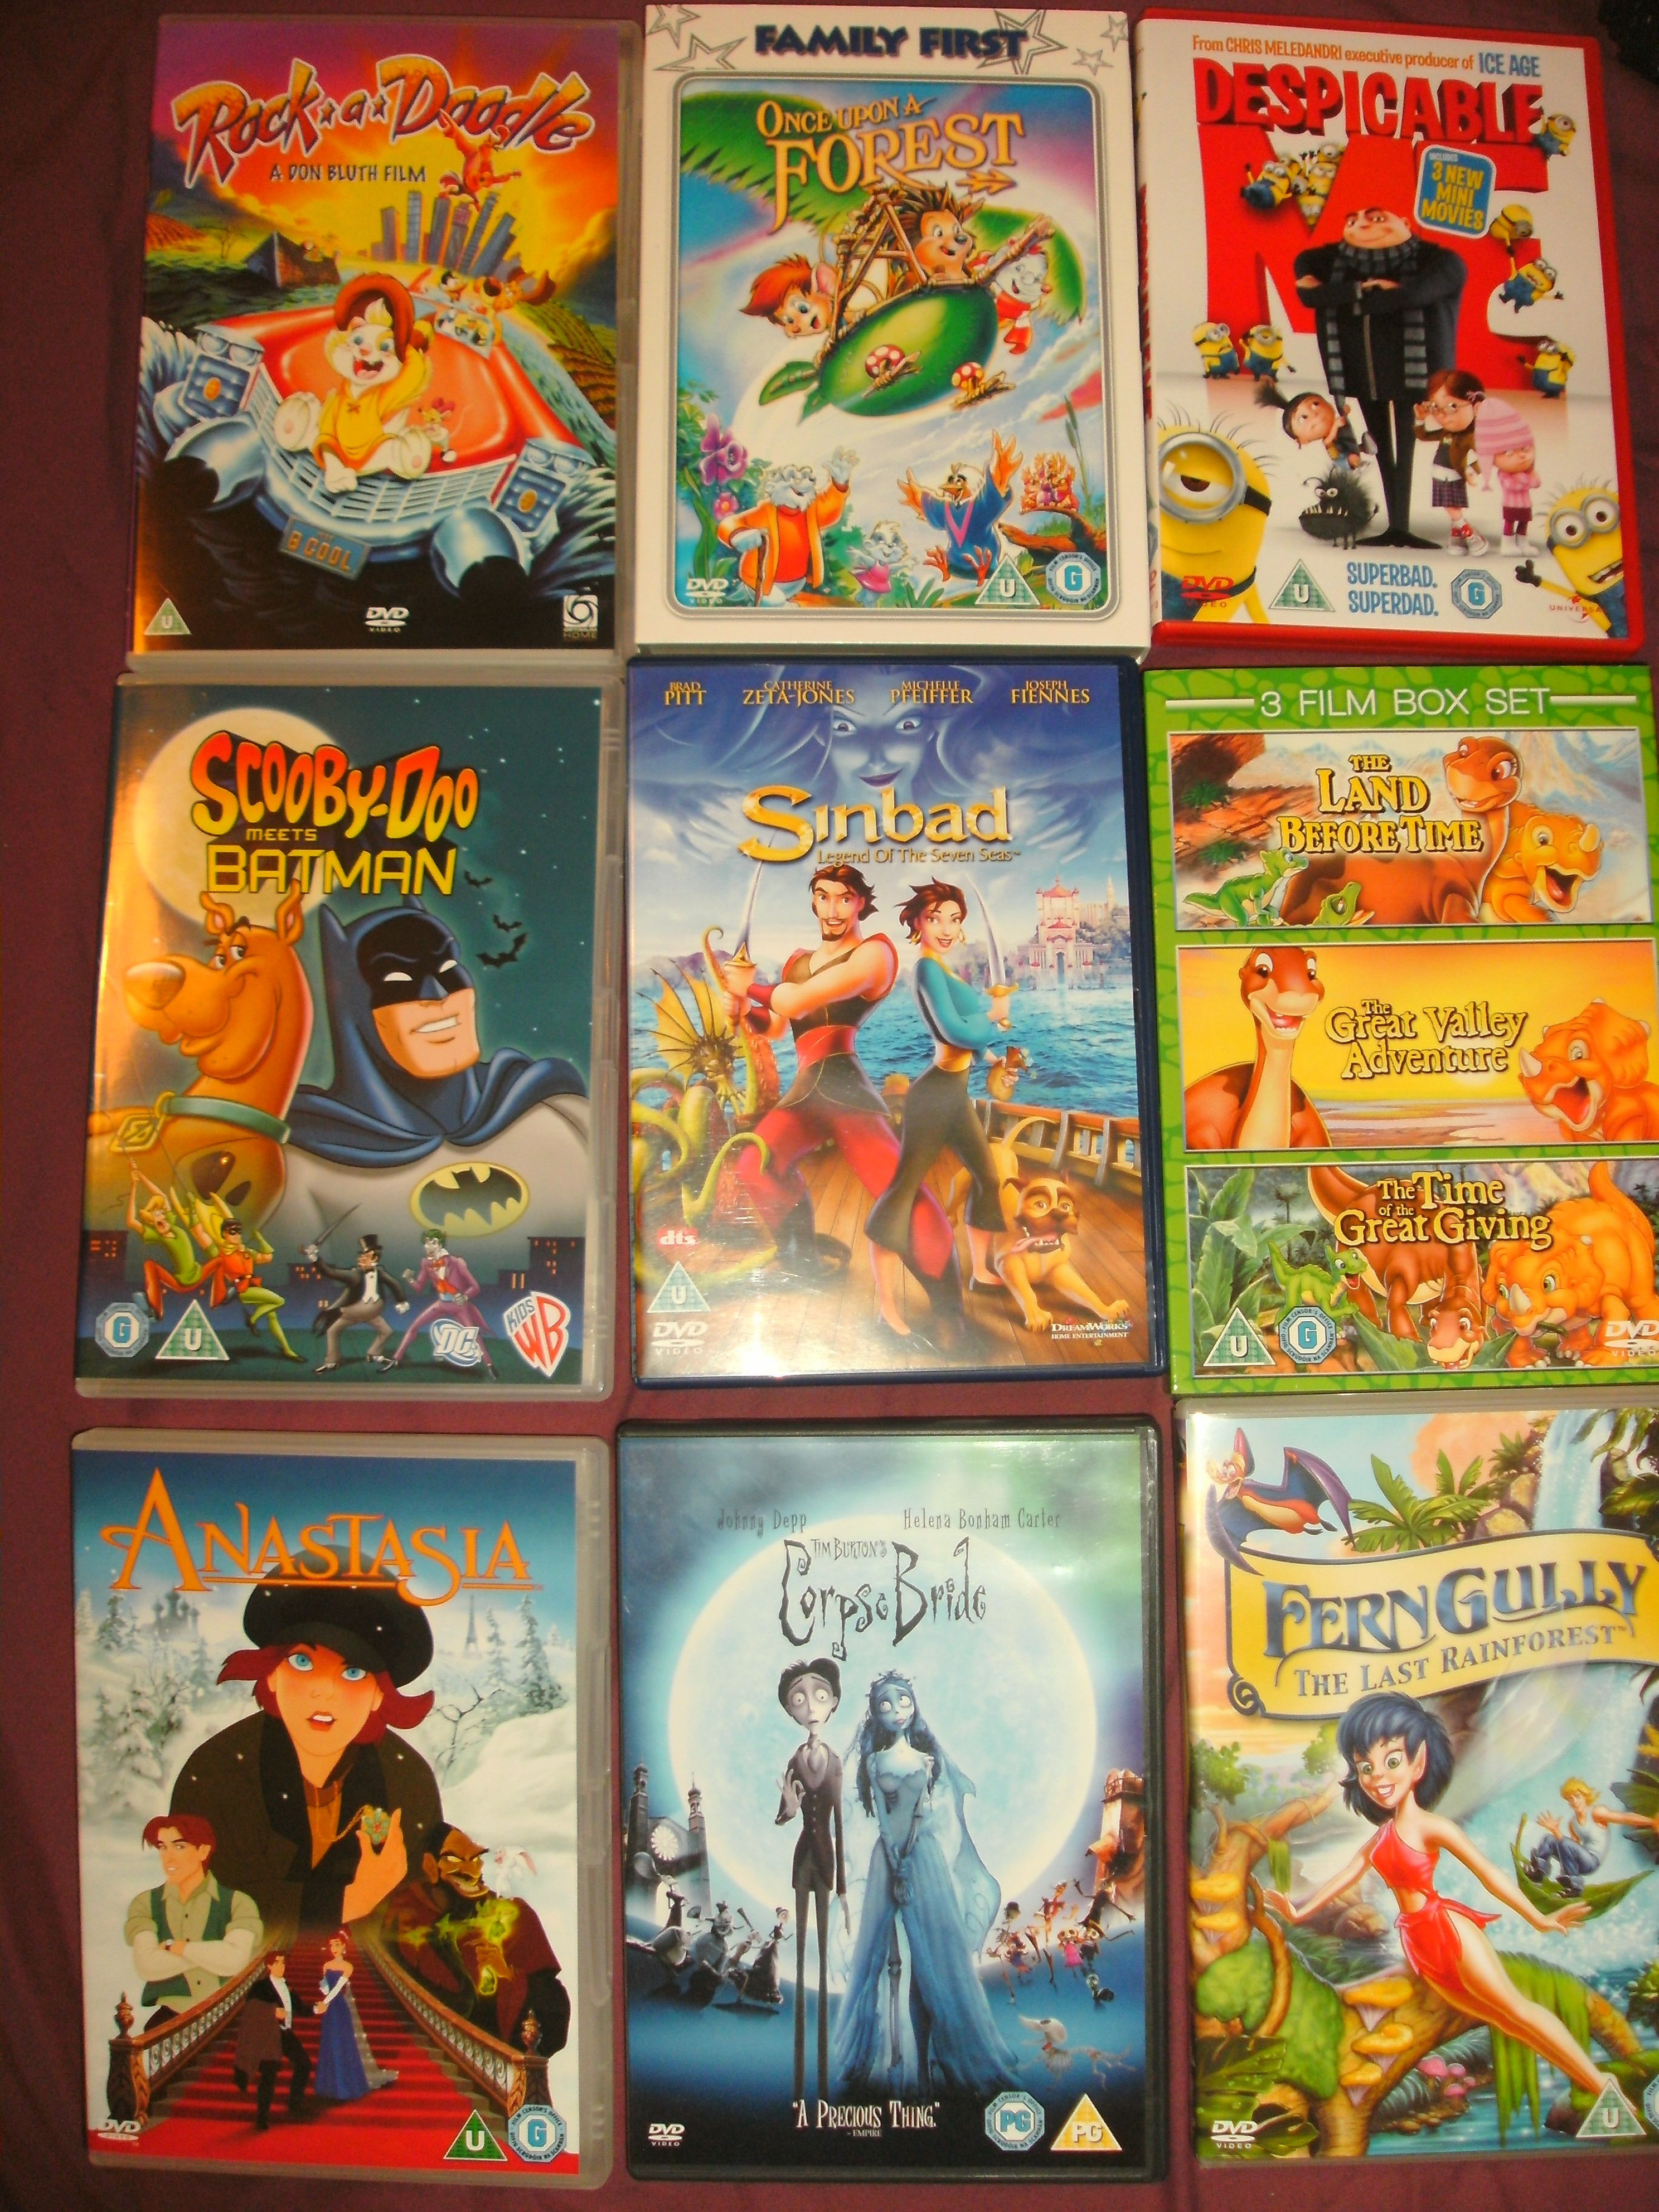 Some nondisney animated films! Rock a Doodle, Once Upon A